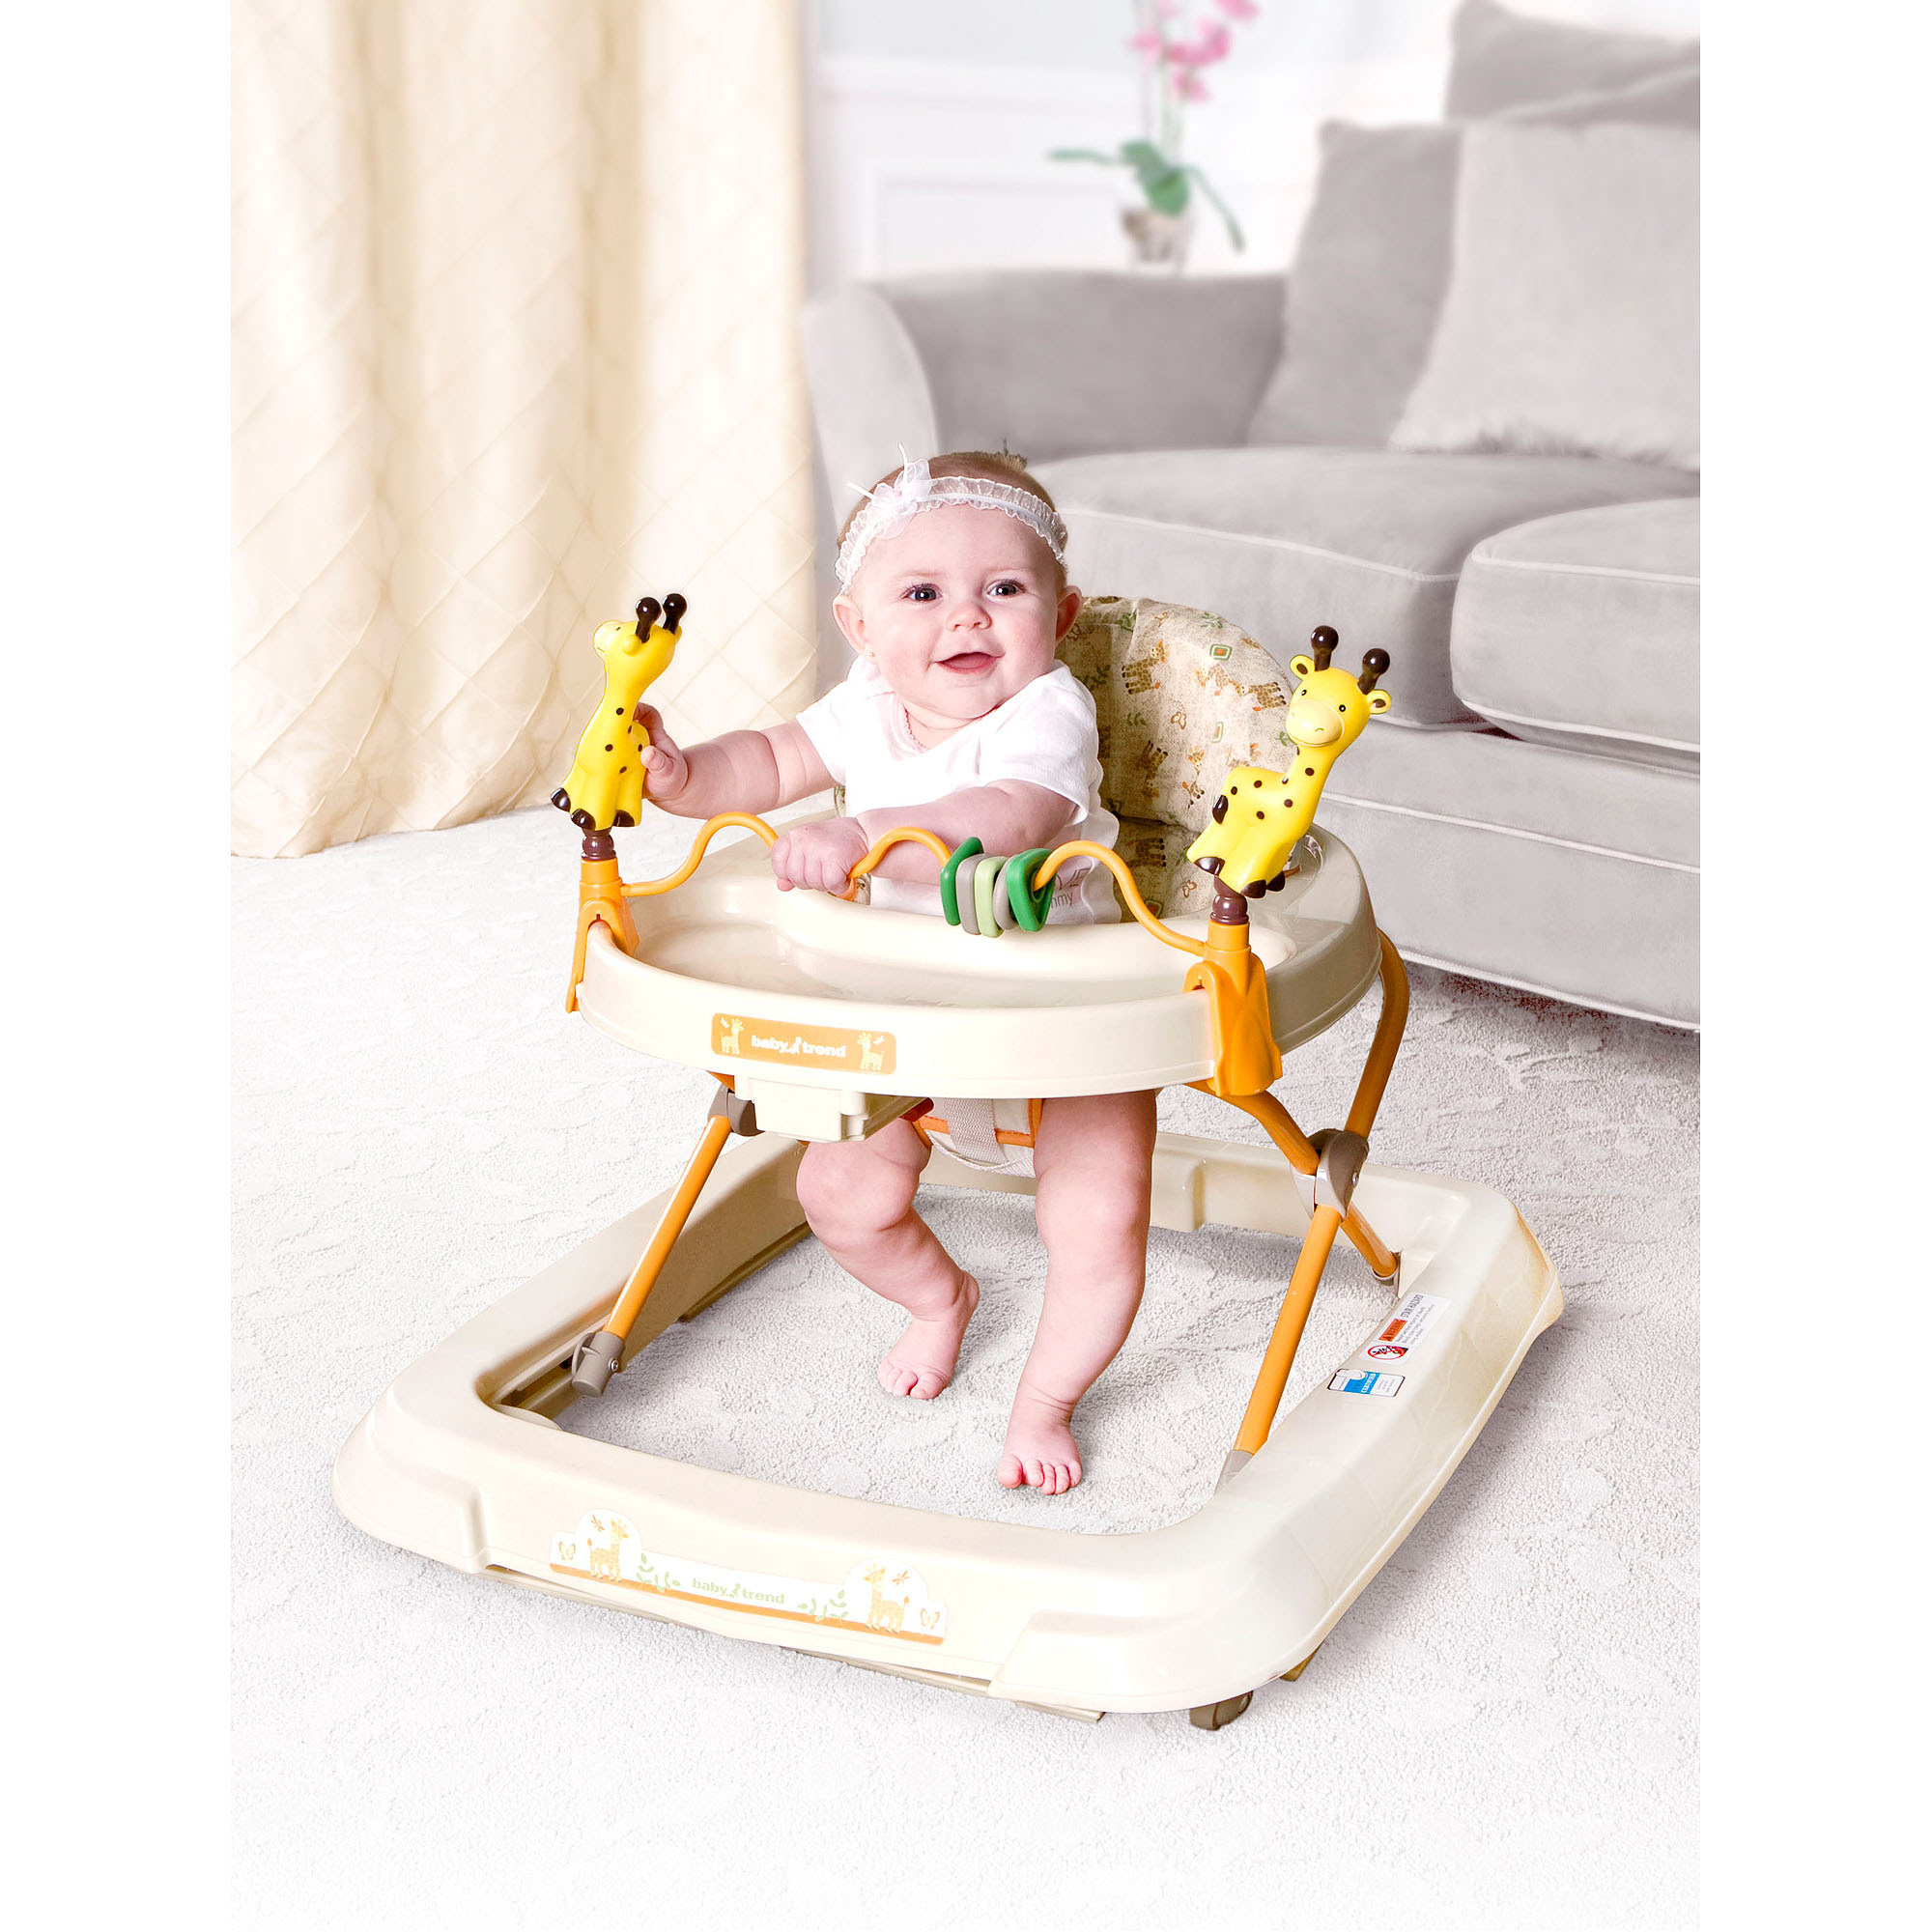 Baby Trend - Baby Activity Walker with Toys, Kiku - Walmart.com